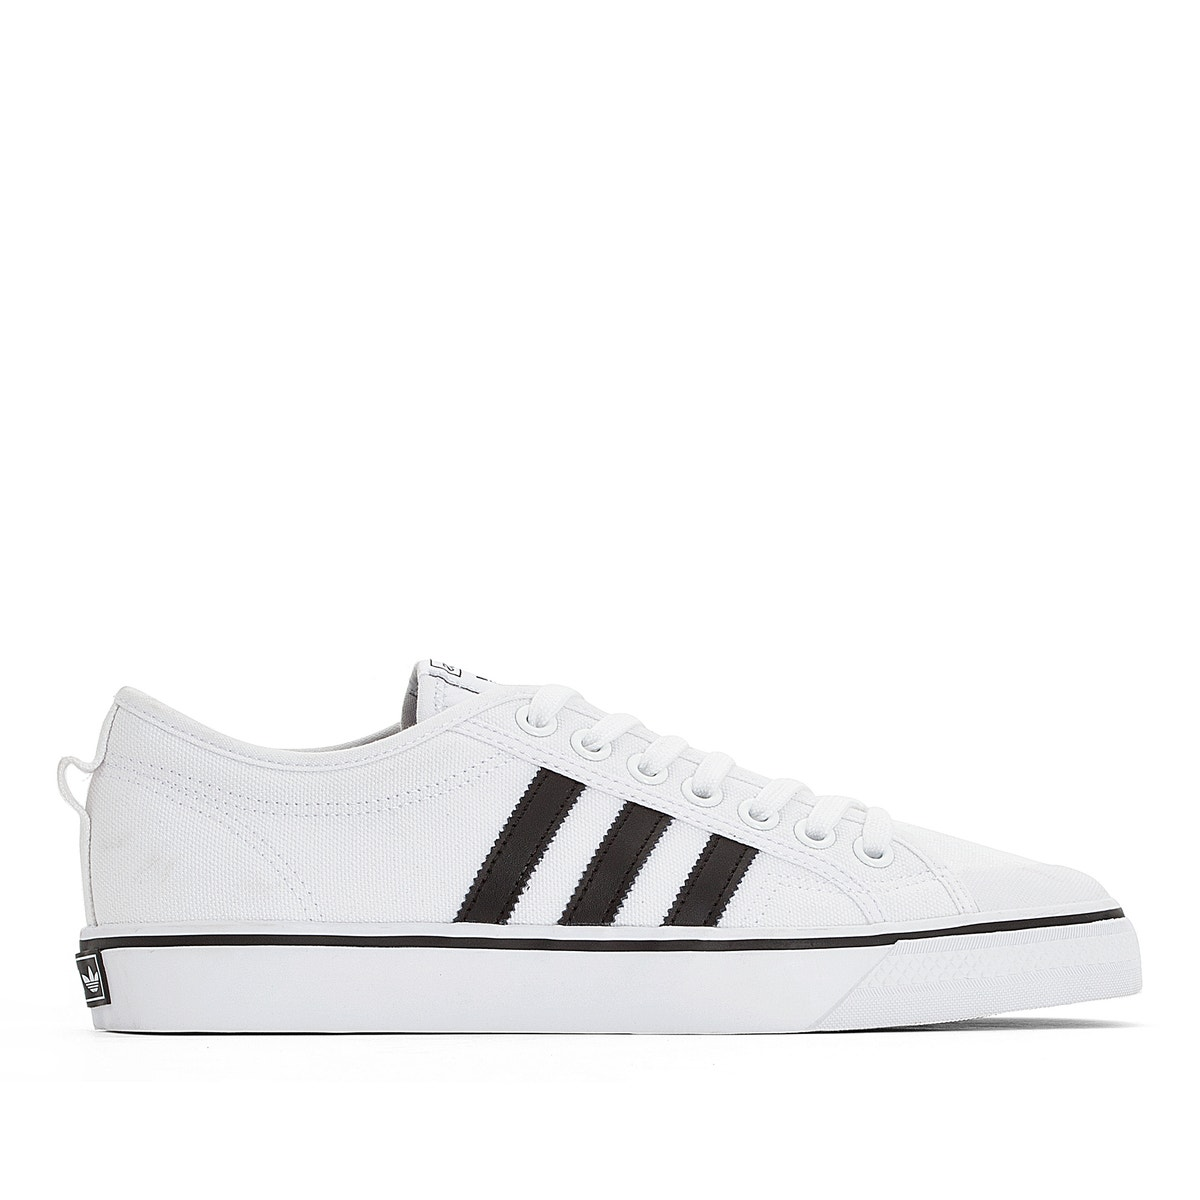 adidas Originals - Adidas Originals Sneakers Canvas Nizza 350138181 - 10465